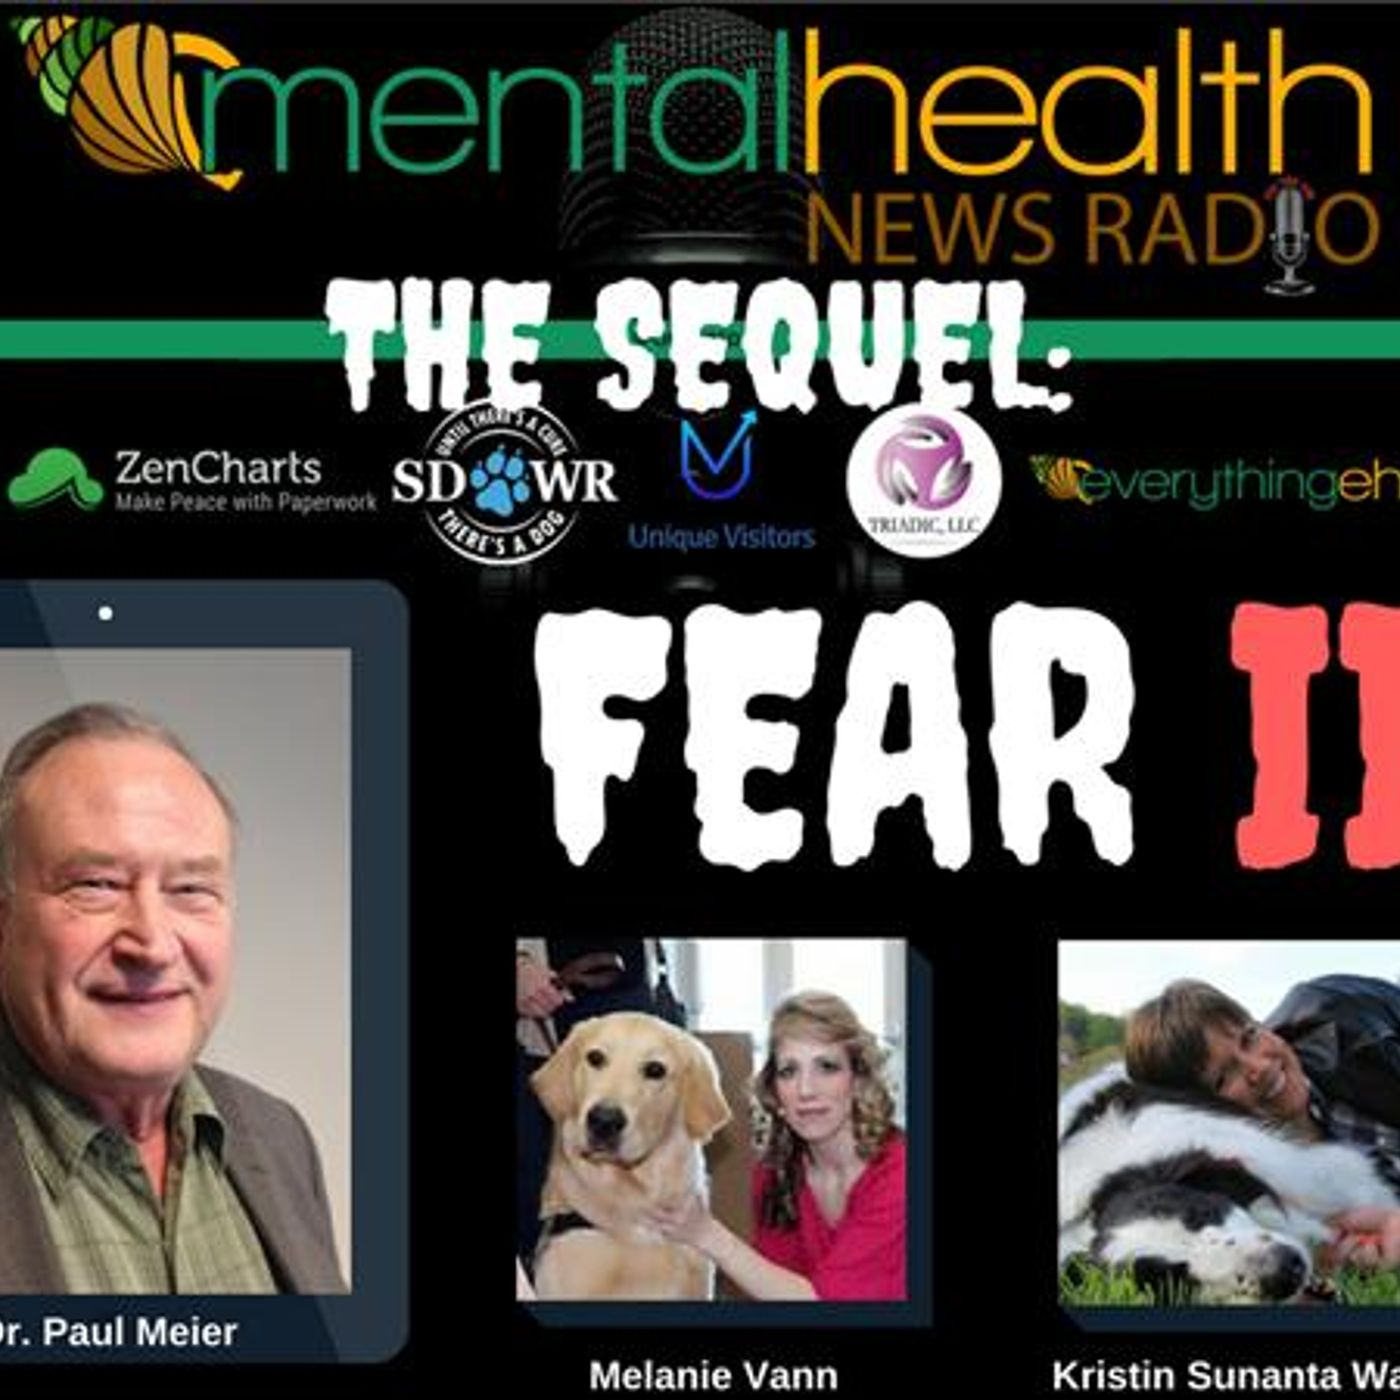 Mental Health News Radio - Round Table Discussions with Dr. Paul Meier: The Sequel - FEAR II